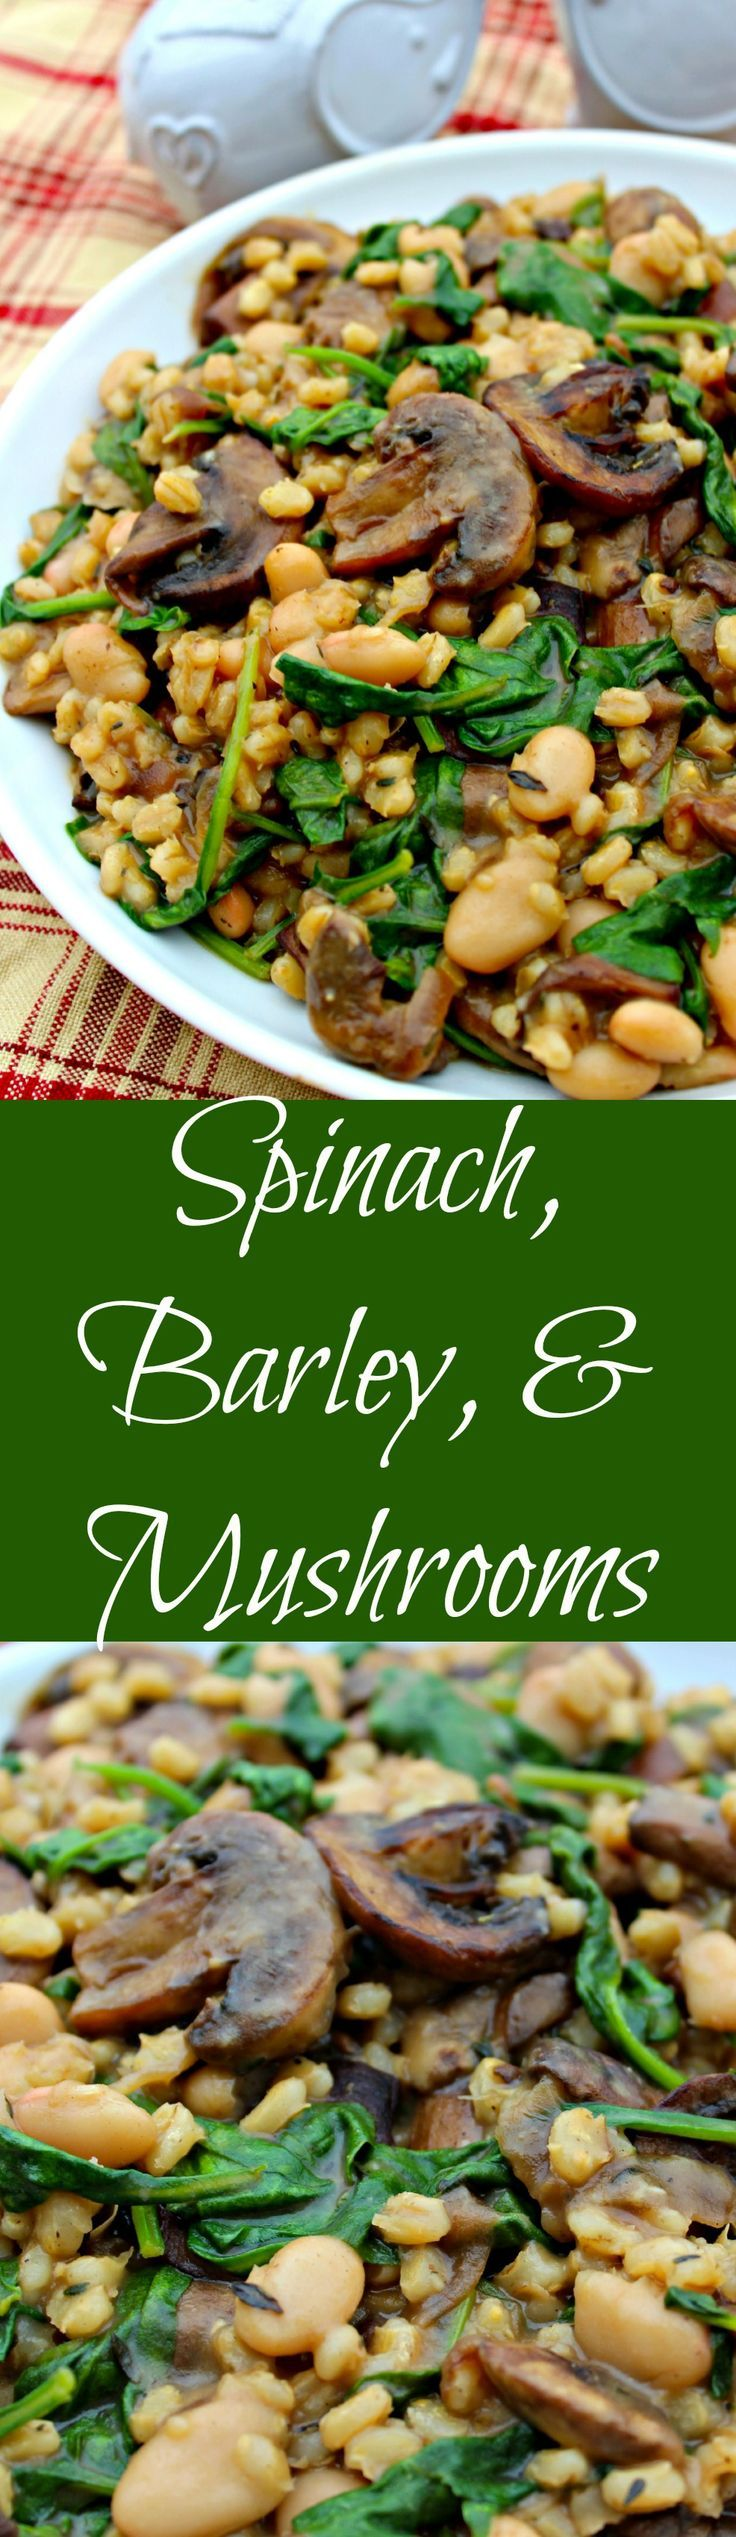 , and Mushrooms ~ Barley, spinach, white beans, caramelized onions ...